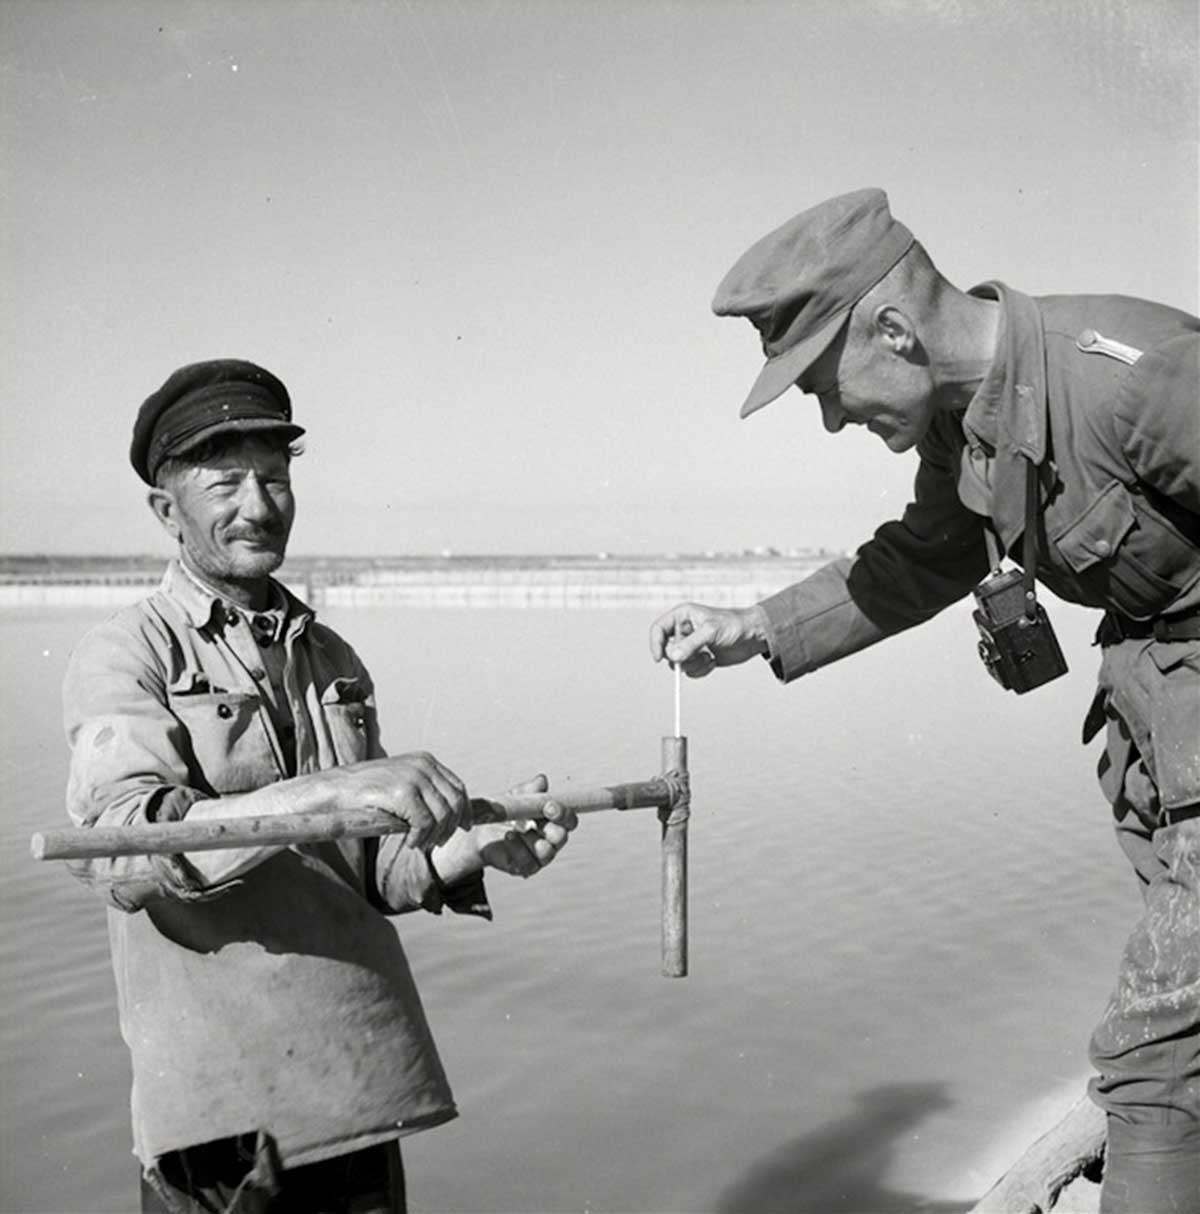 A Wehrmacht soldier with a local fisherman.